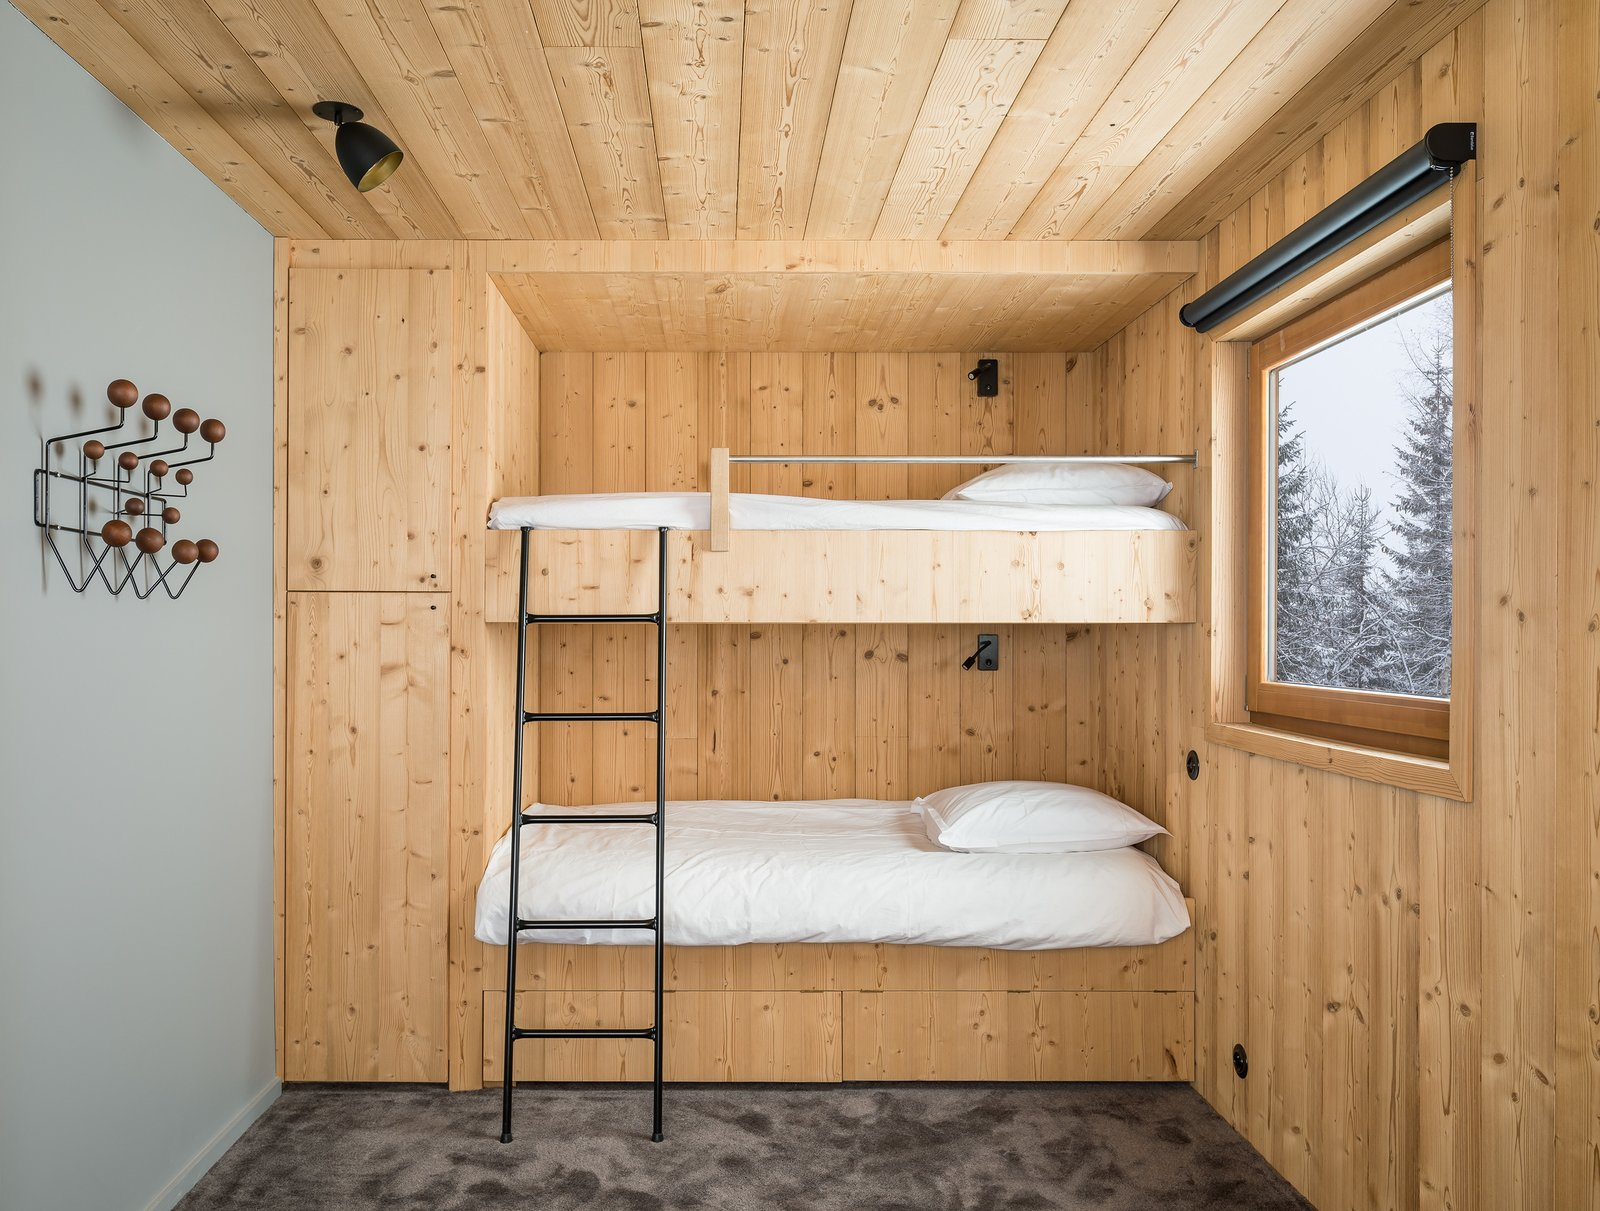 Bedroom, Bunks, Ceiling Lighting, Wardrobe, and Carpet Floor  Photos from Mountain House